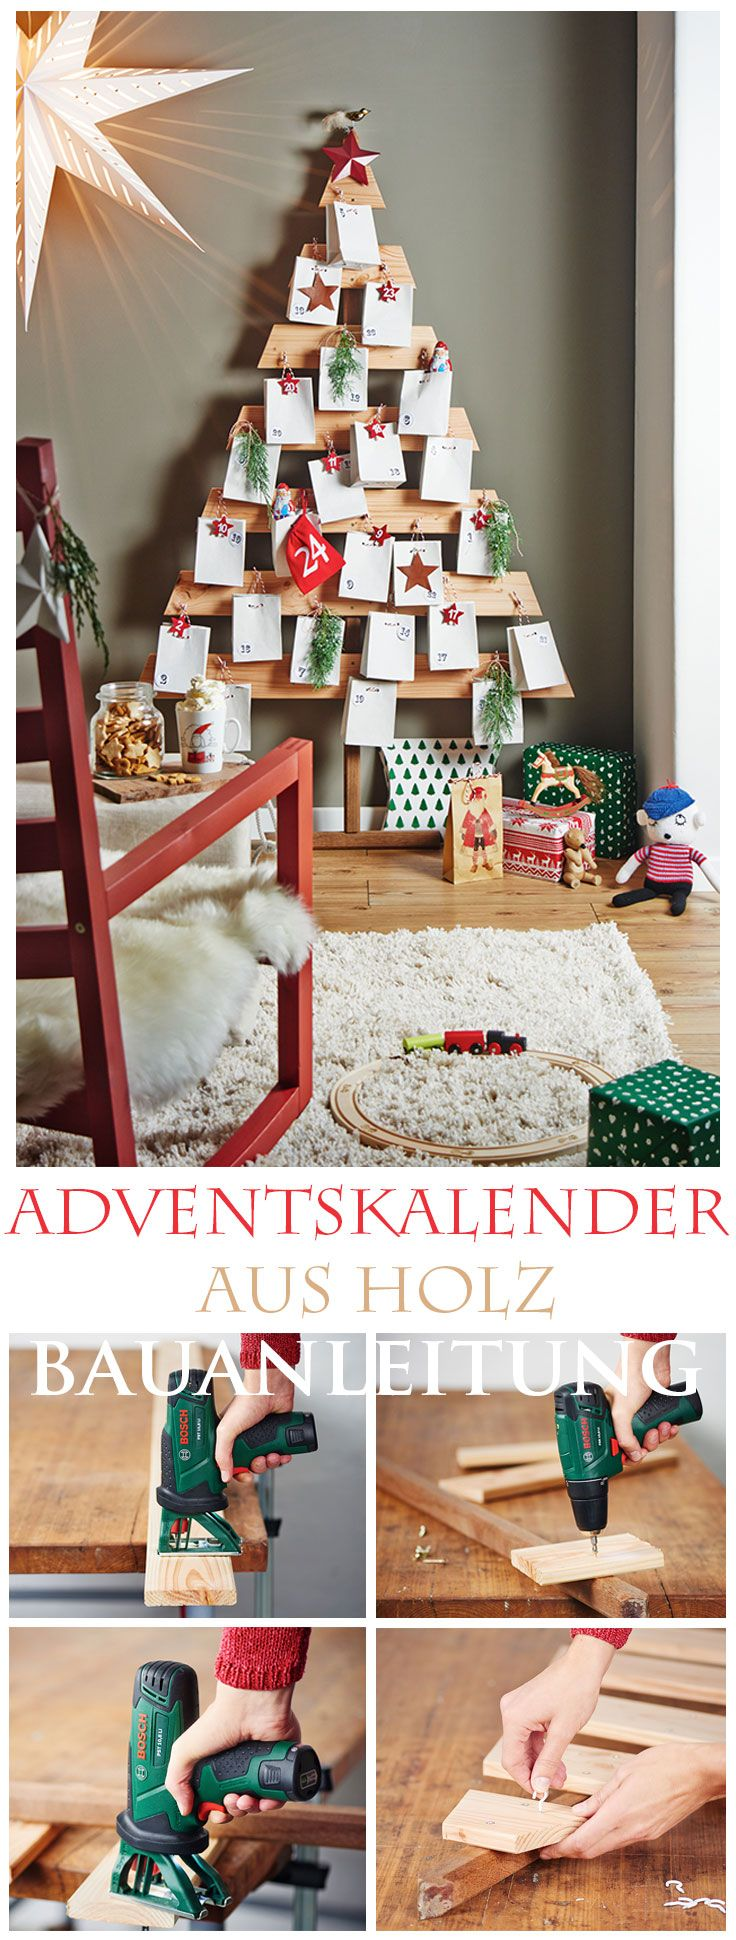 die besten 17 ideen zu adventskalender holz auf pinterest adventskalender aus holz. Black Bedroom Furniture Sets. Home Design Ideas